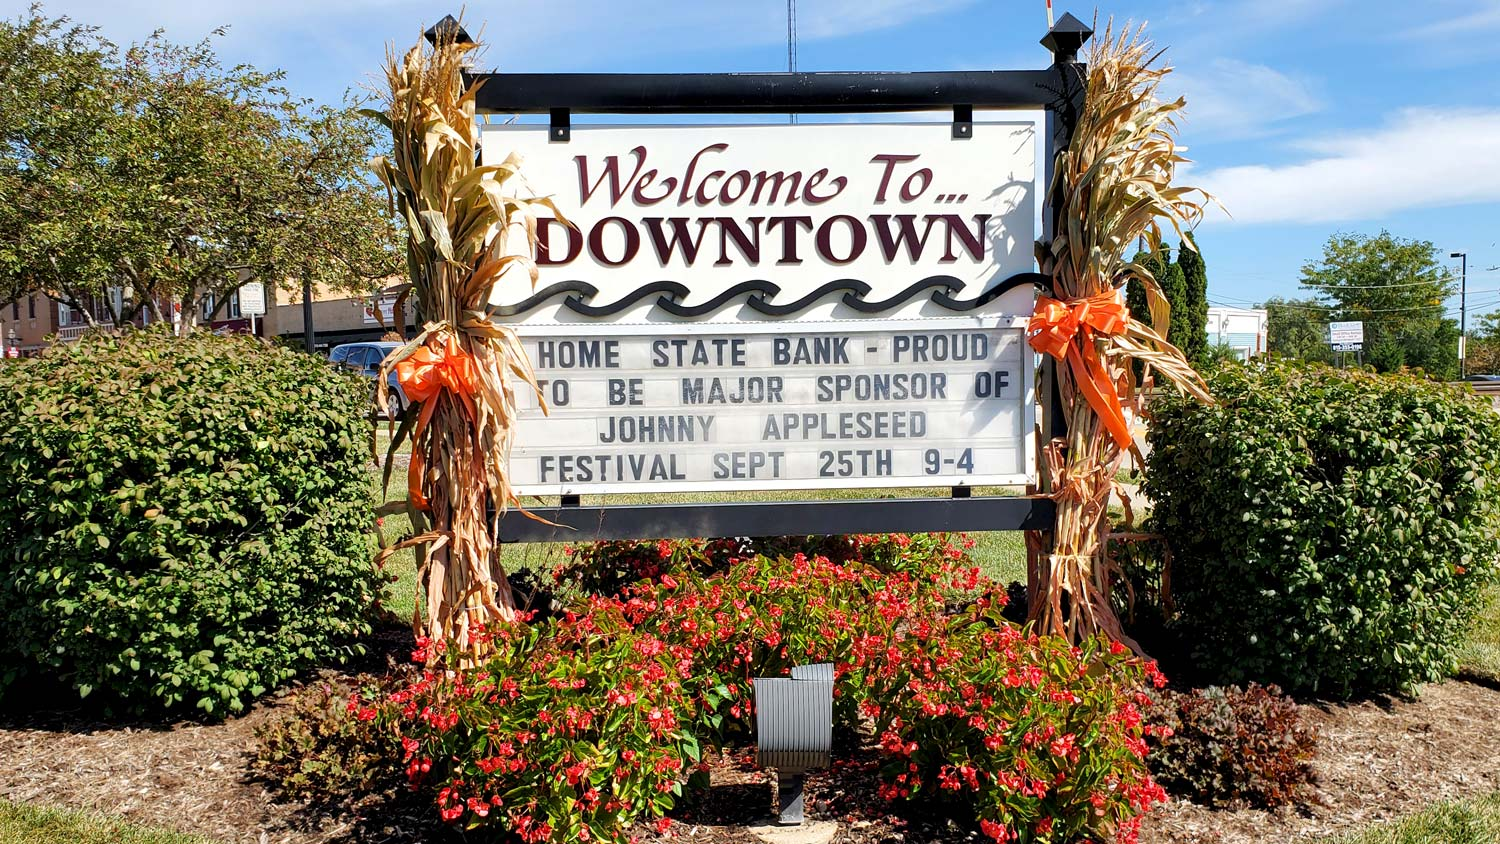 Downtown welcome sign.